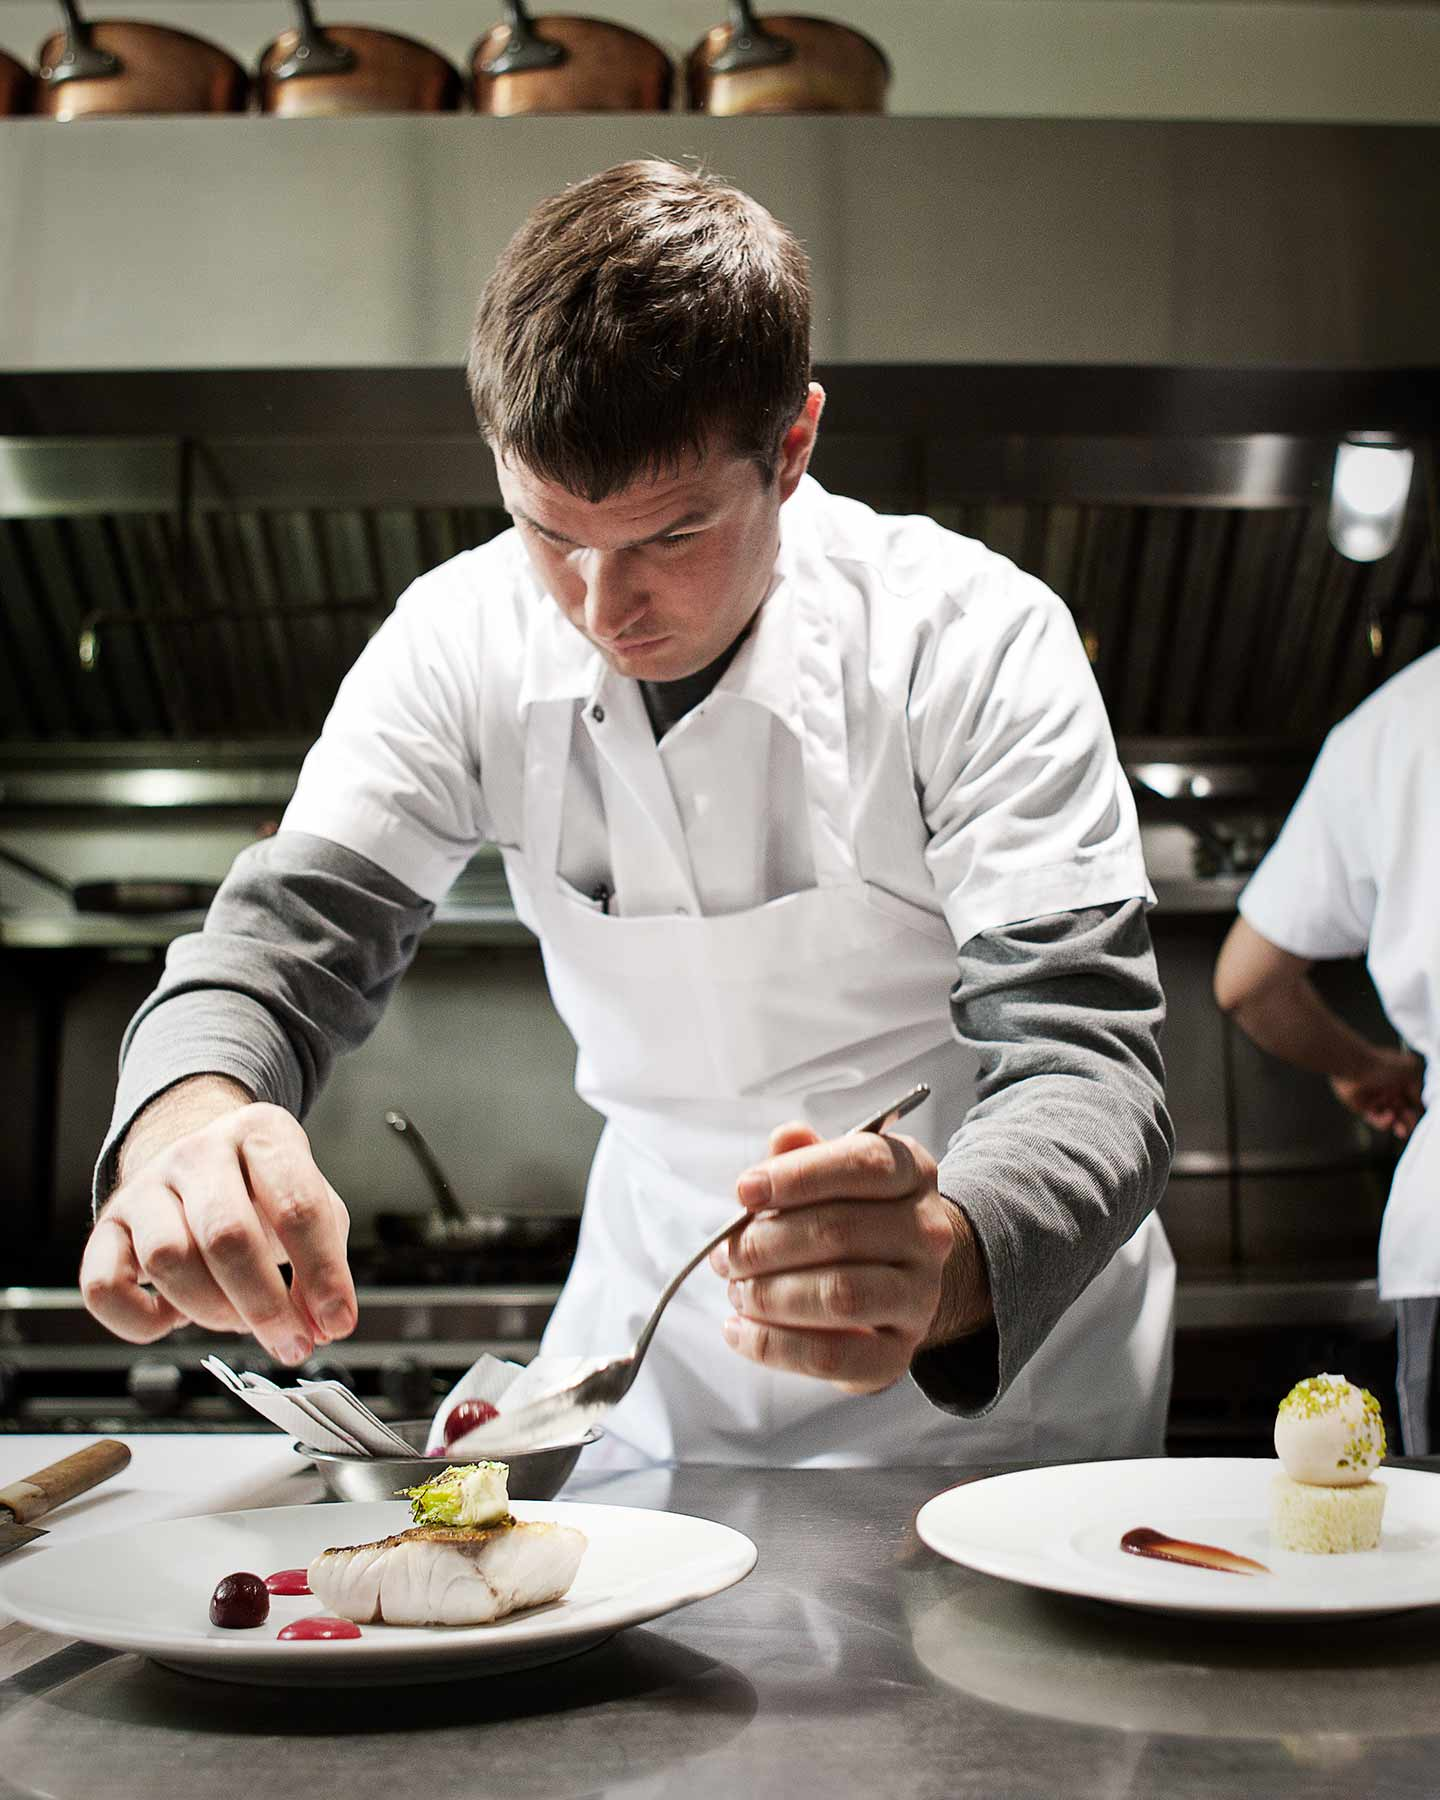 chef concentrating on plating a dish at his restaurant